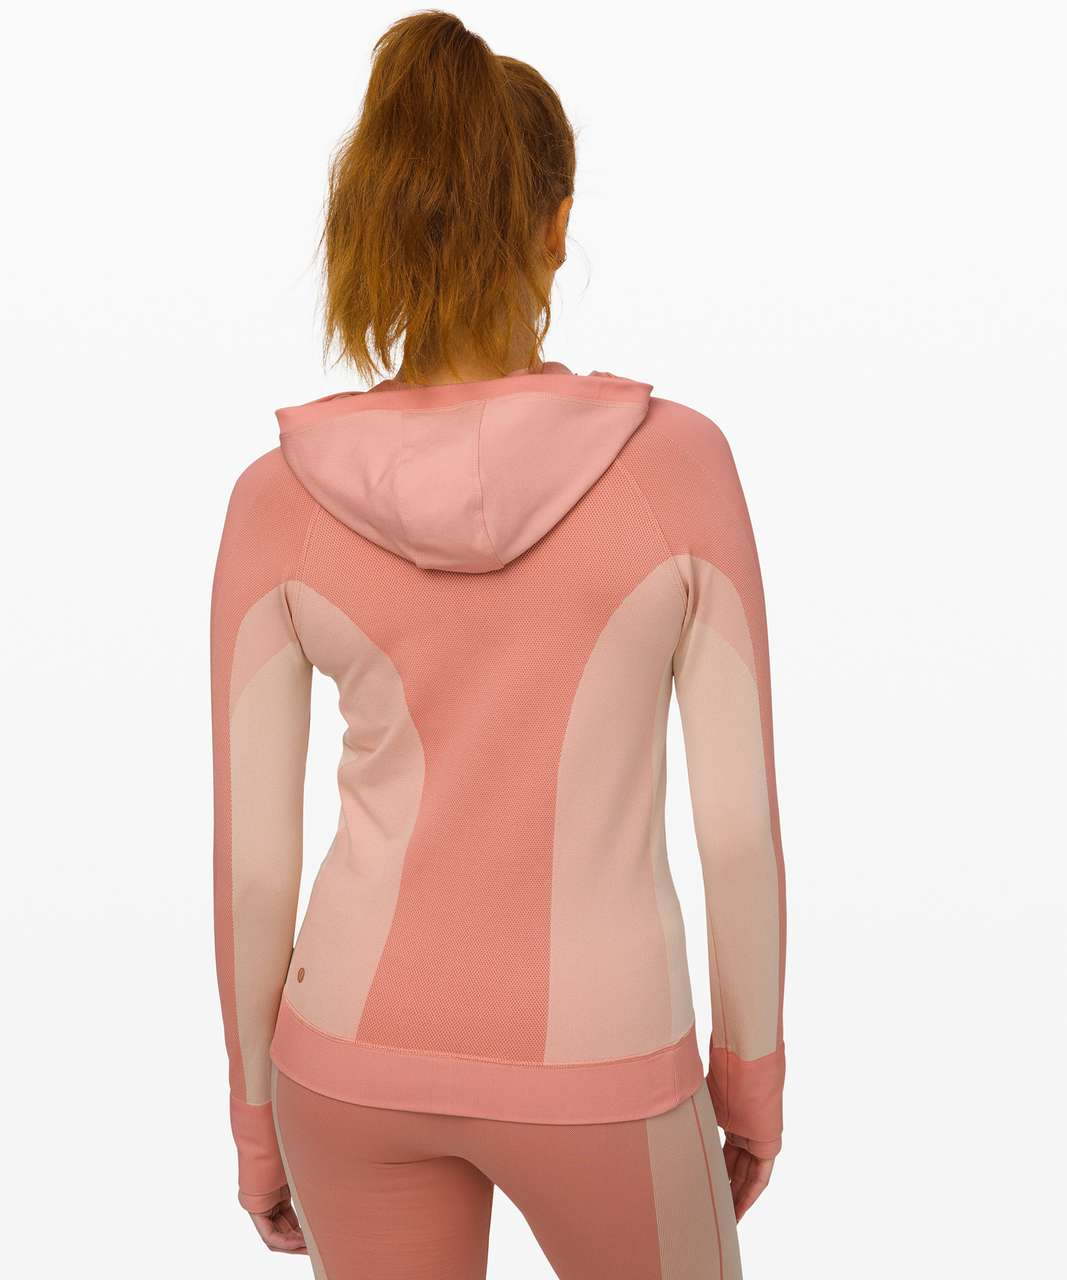 Lululemon Ebb to Train Jacket *Abstract - Copper Clay / Angel Wing